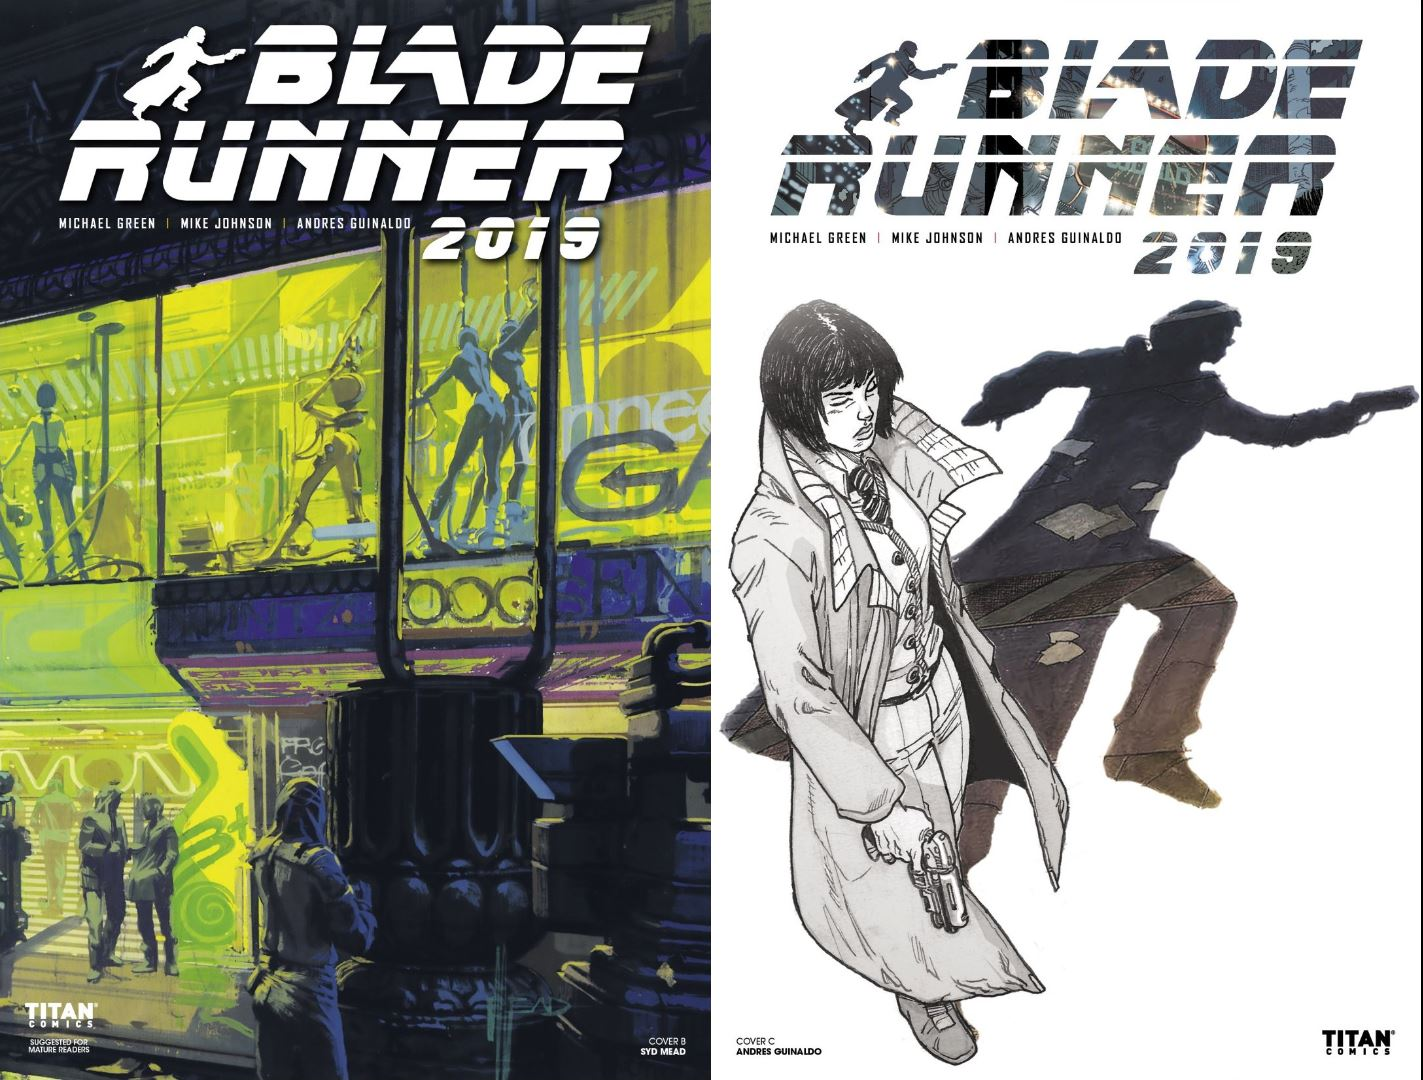 Blade Runner 2019 # 4 Review - covers by Titan comics